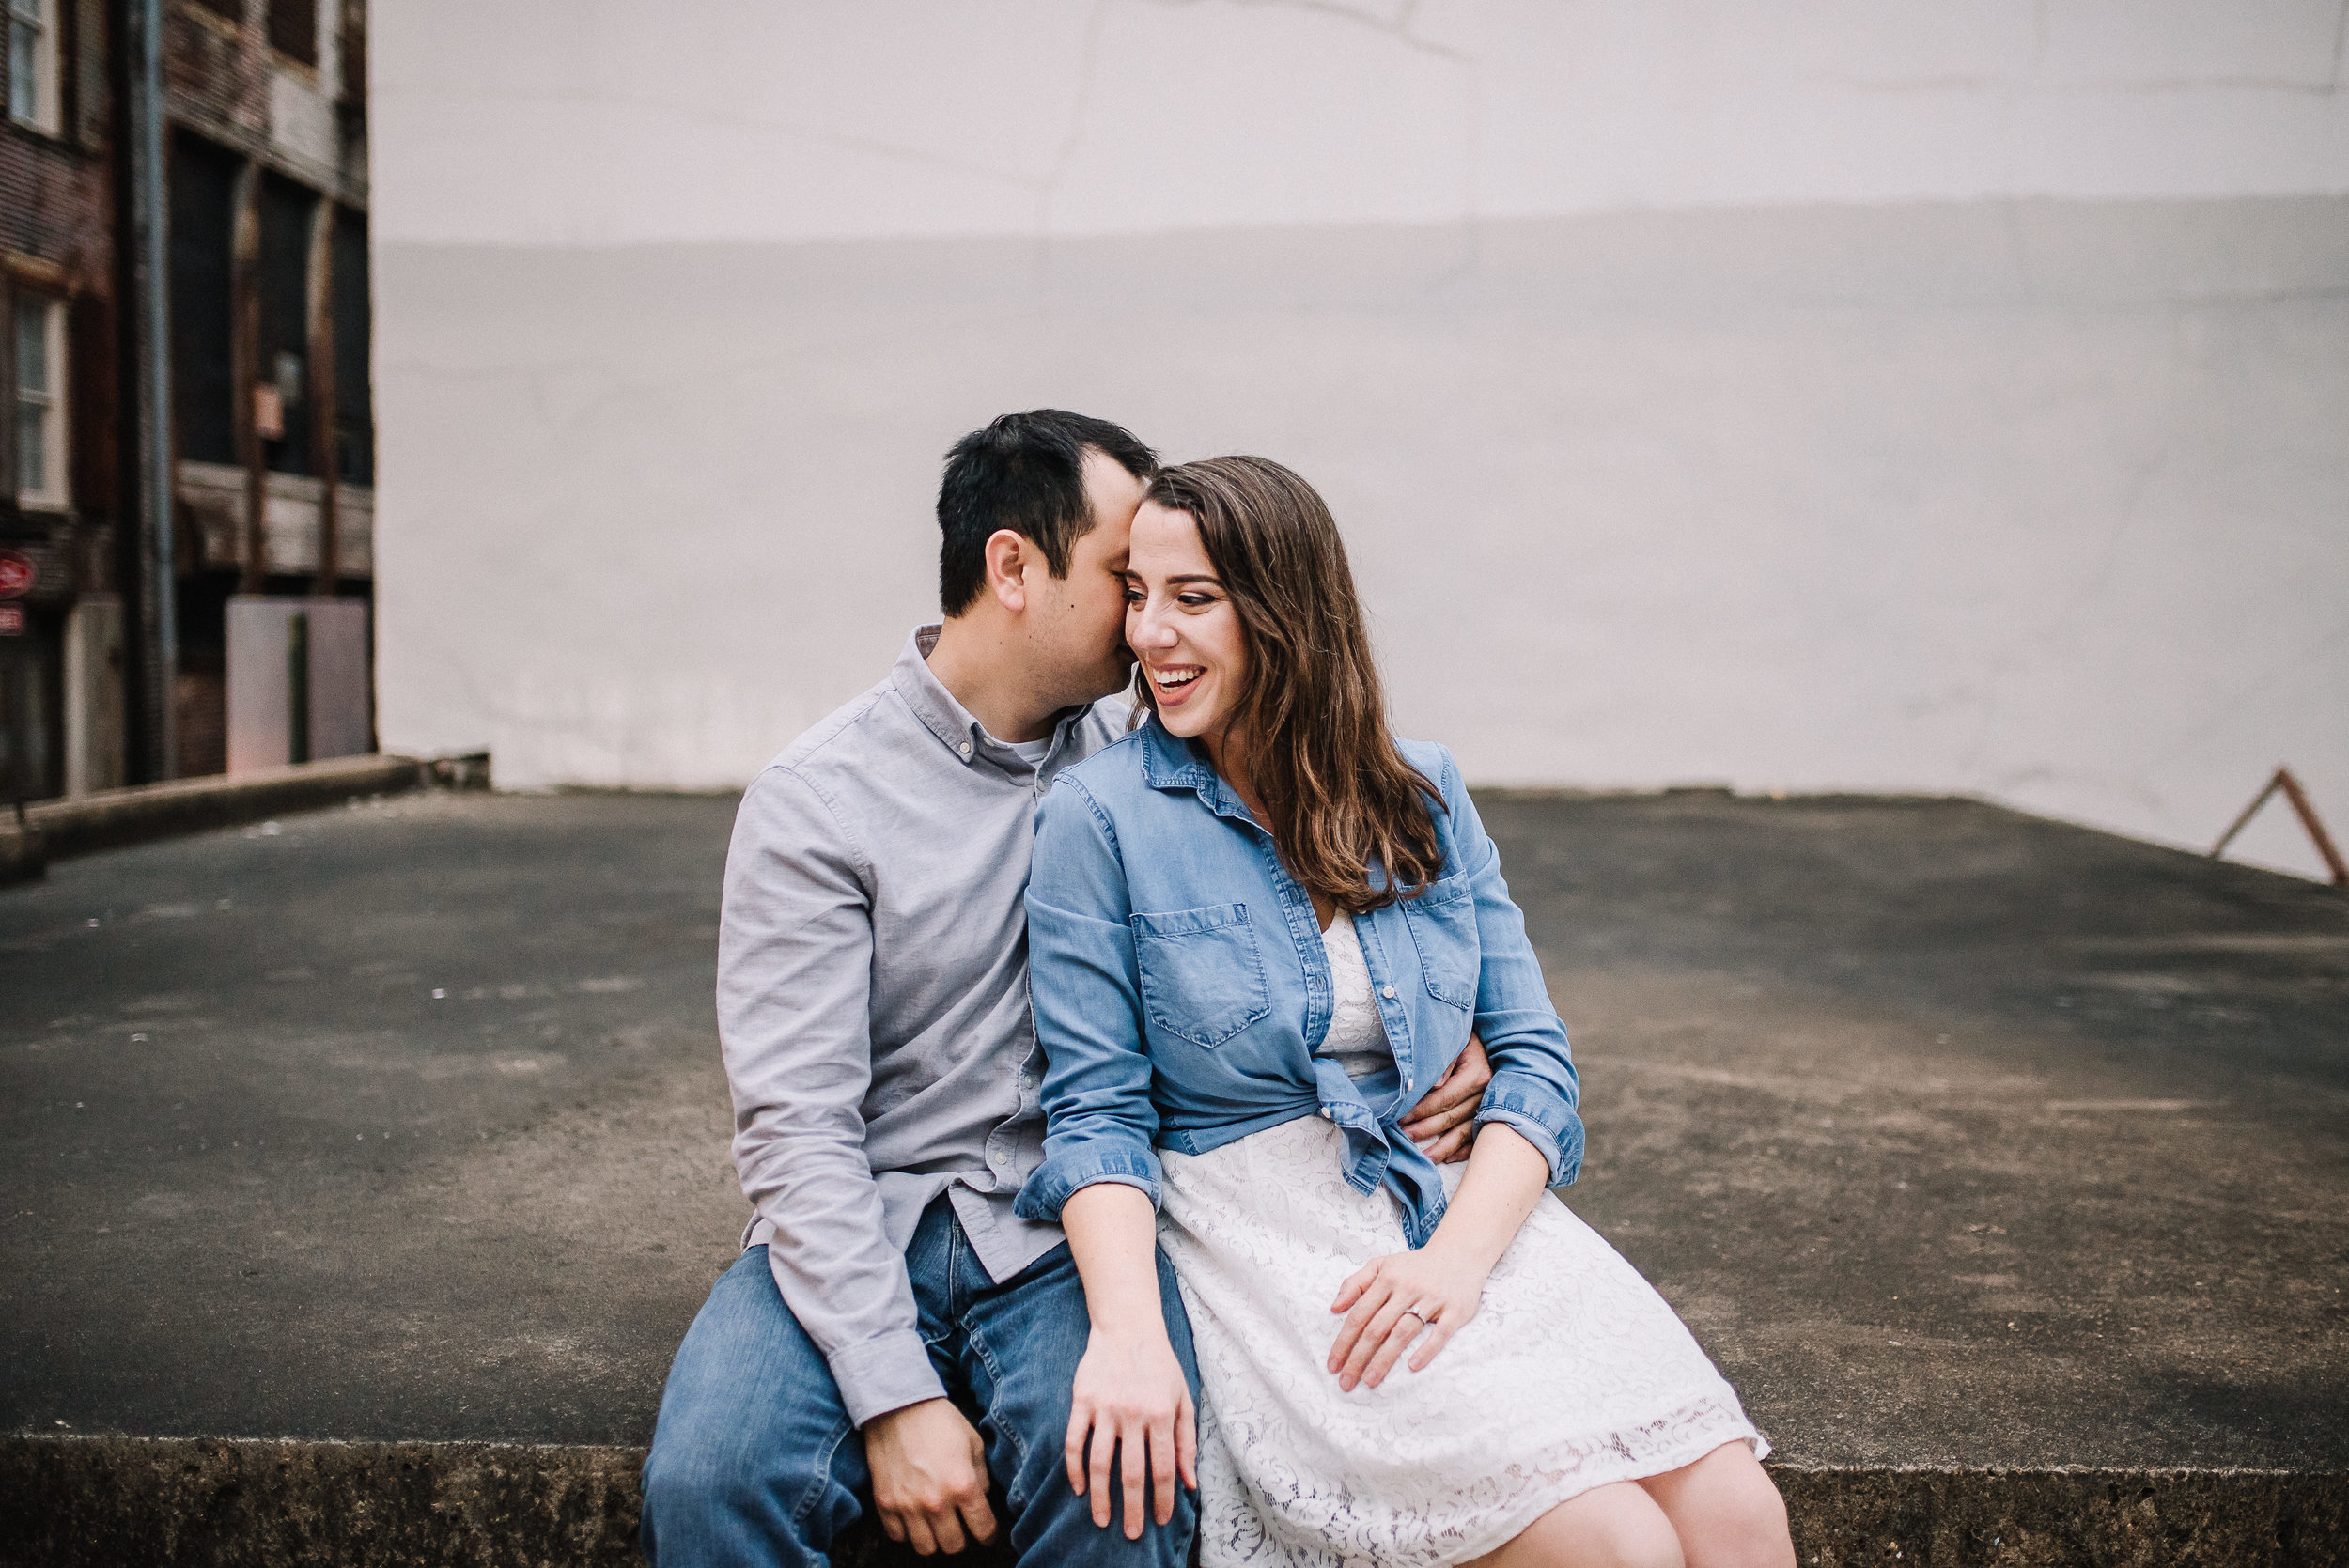 Jenny&Patrick_Downtown Memphis Engagement_Ashley Benham Photography-170.jpg